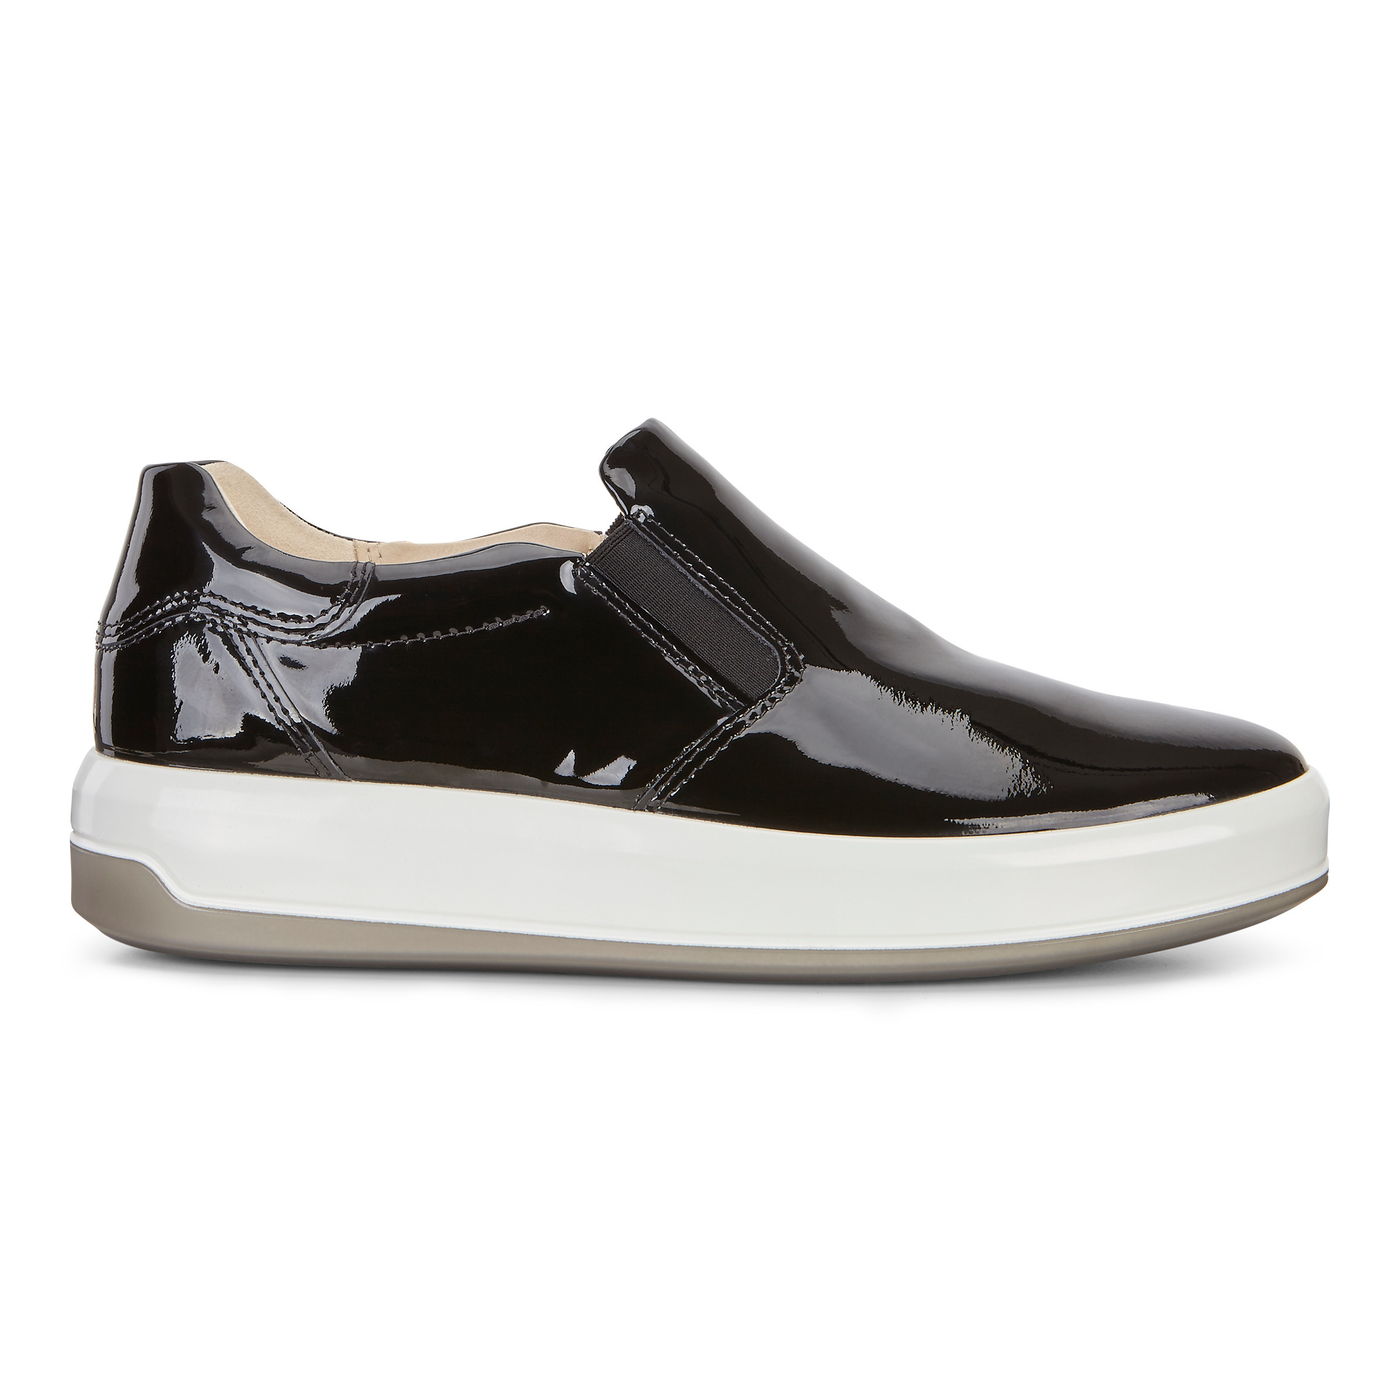 ECCO SOFT9 Sneaker Slip On